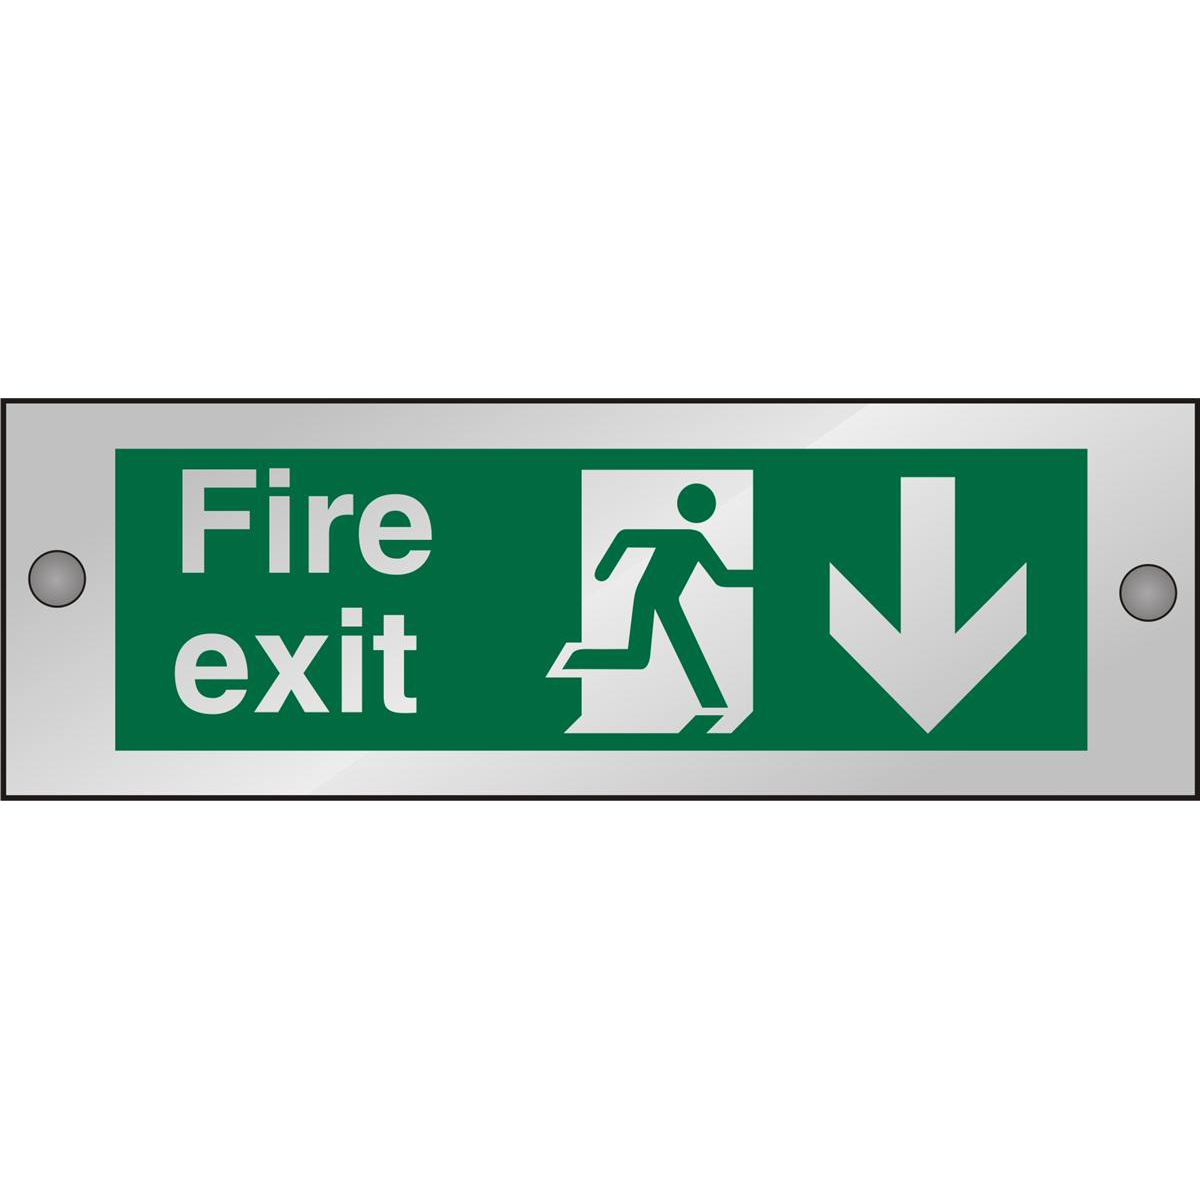 Clear Sign 300x100 5mm FireExit Man Running Right&Arrow Down Ref CACSP124300x100 Up to 10 Day Leadtime